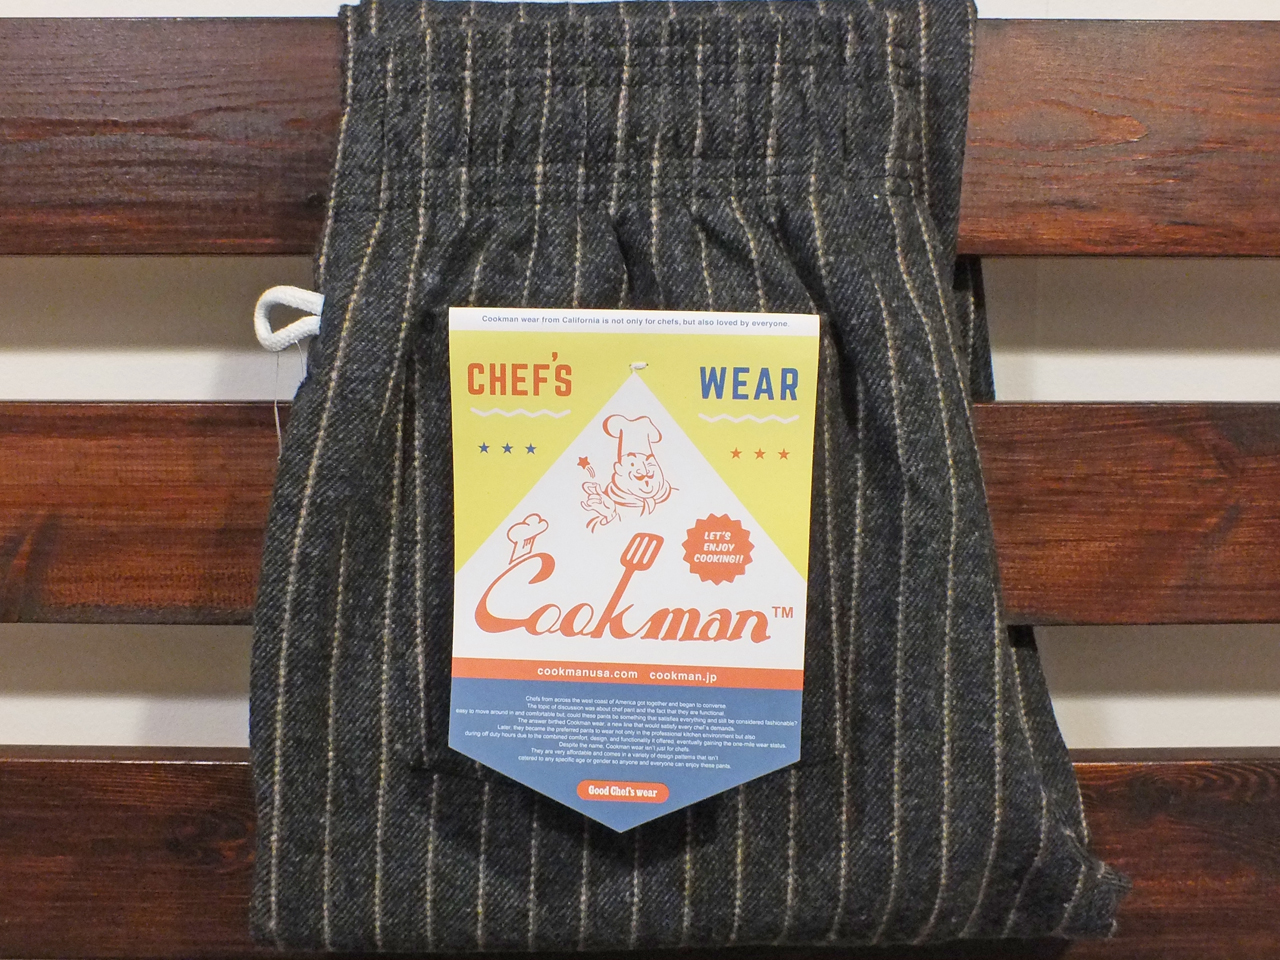 COOKMAN LOS ANGELES CALIFORNIA CHEF PANTS WOOL MIX STRIPE GRAY